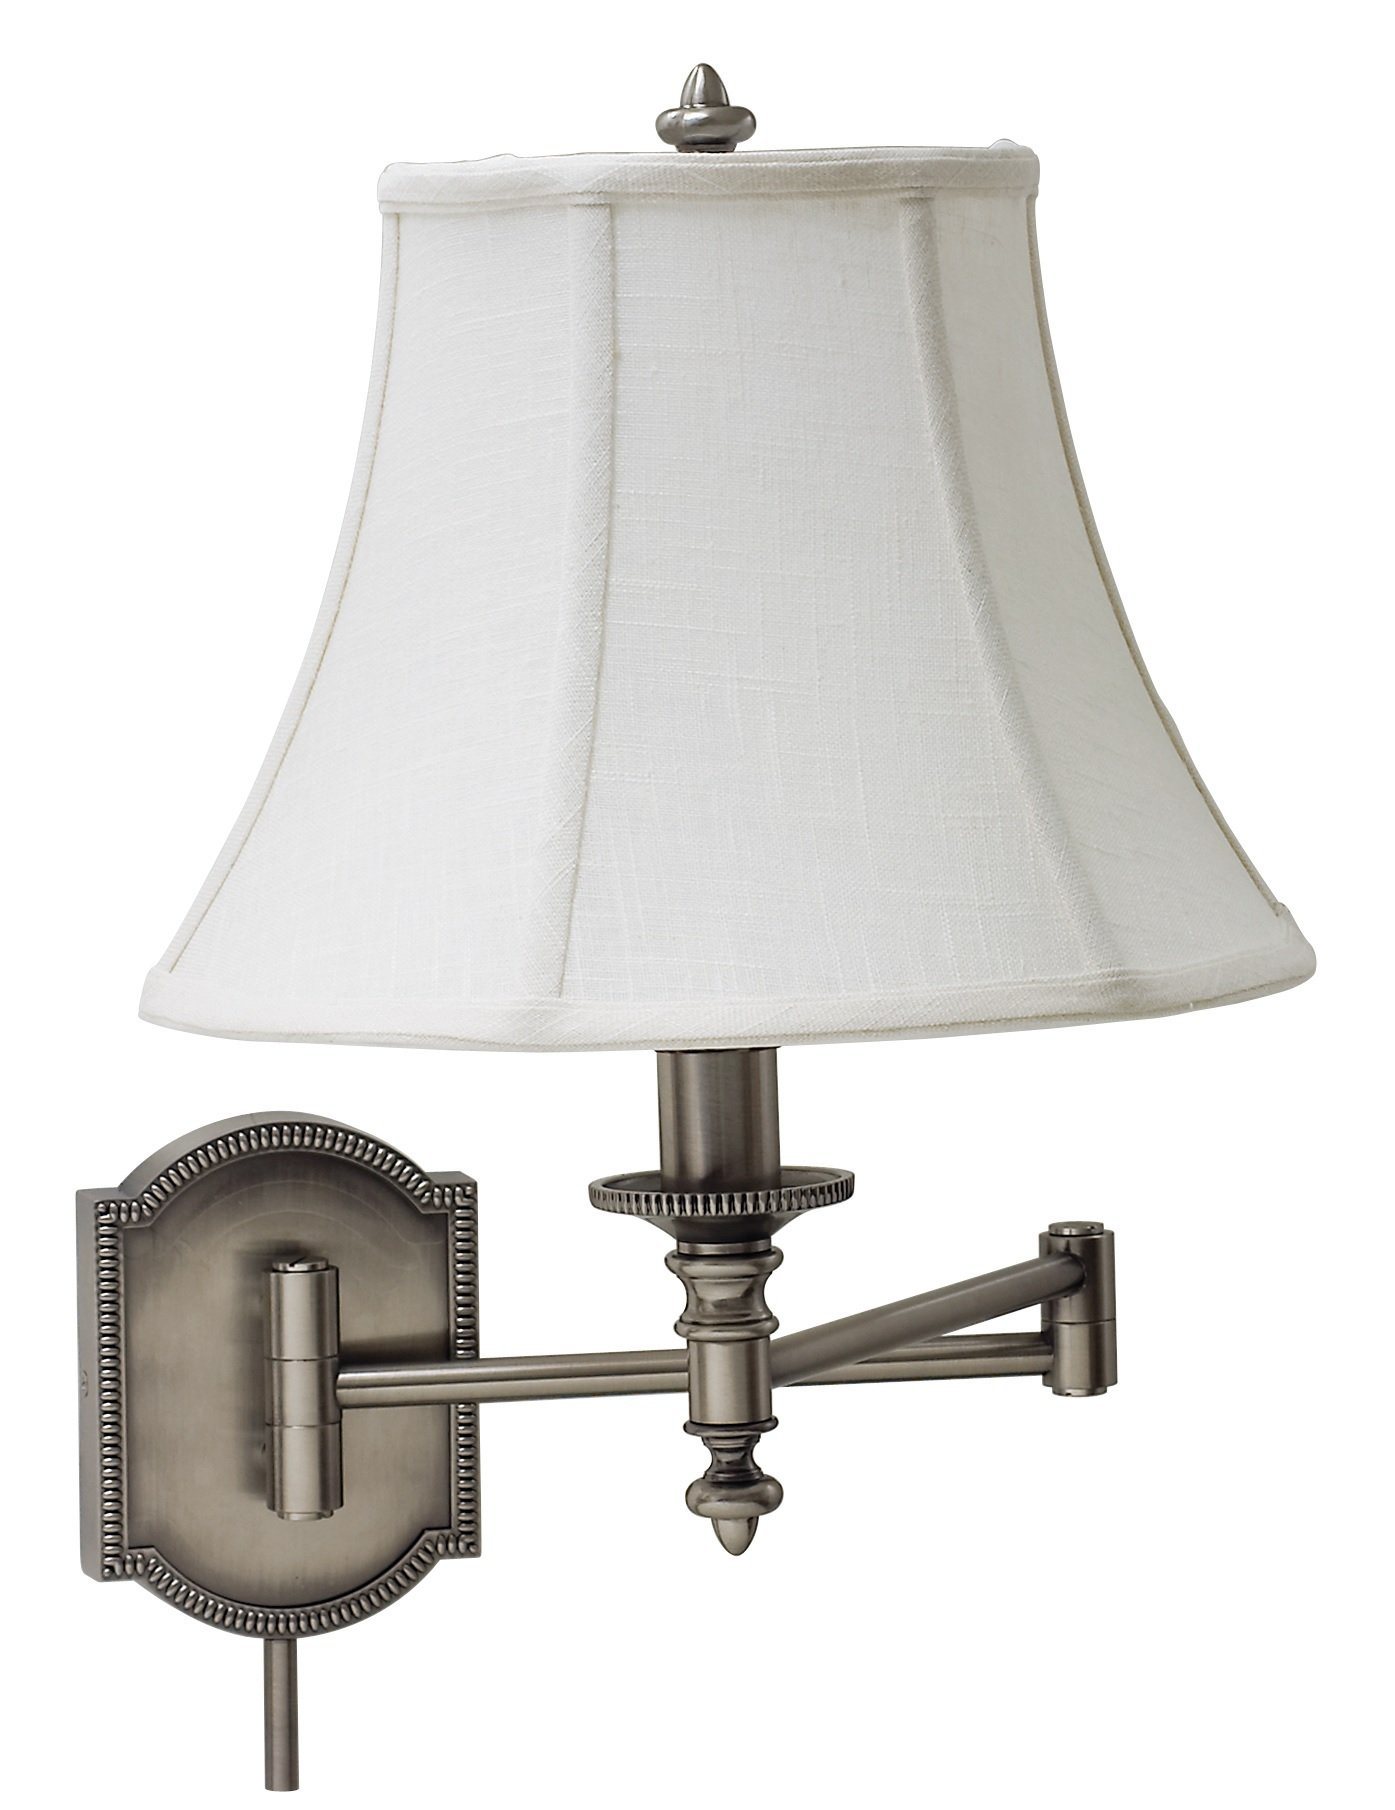 House of Troy WS761-AS Decorative 1LT Swing-Arm Wall Lamp, Antique Silver Finish with Beige Fabric Shade